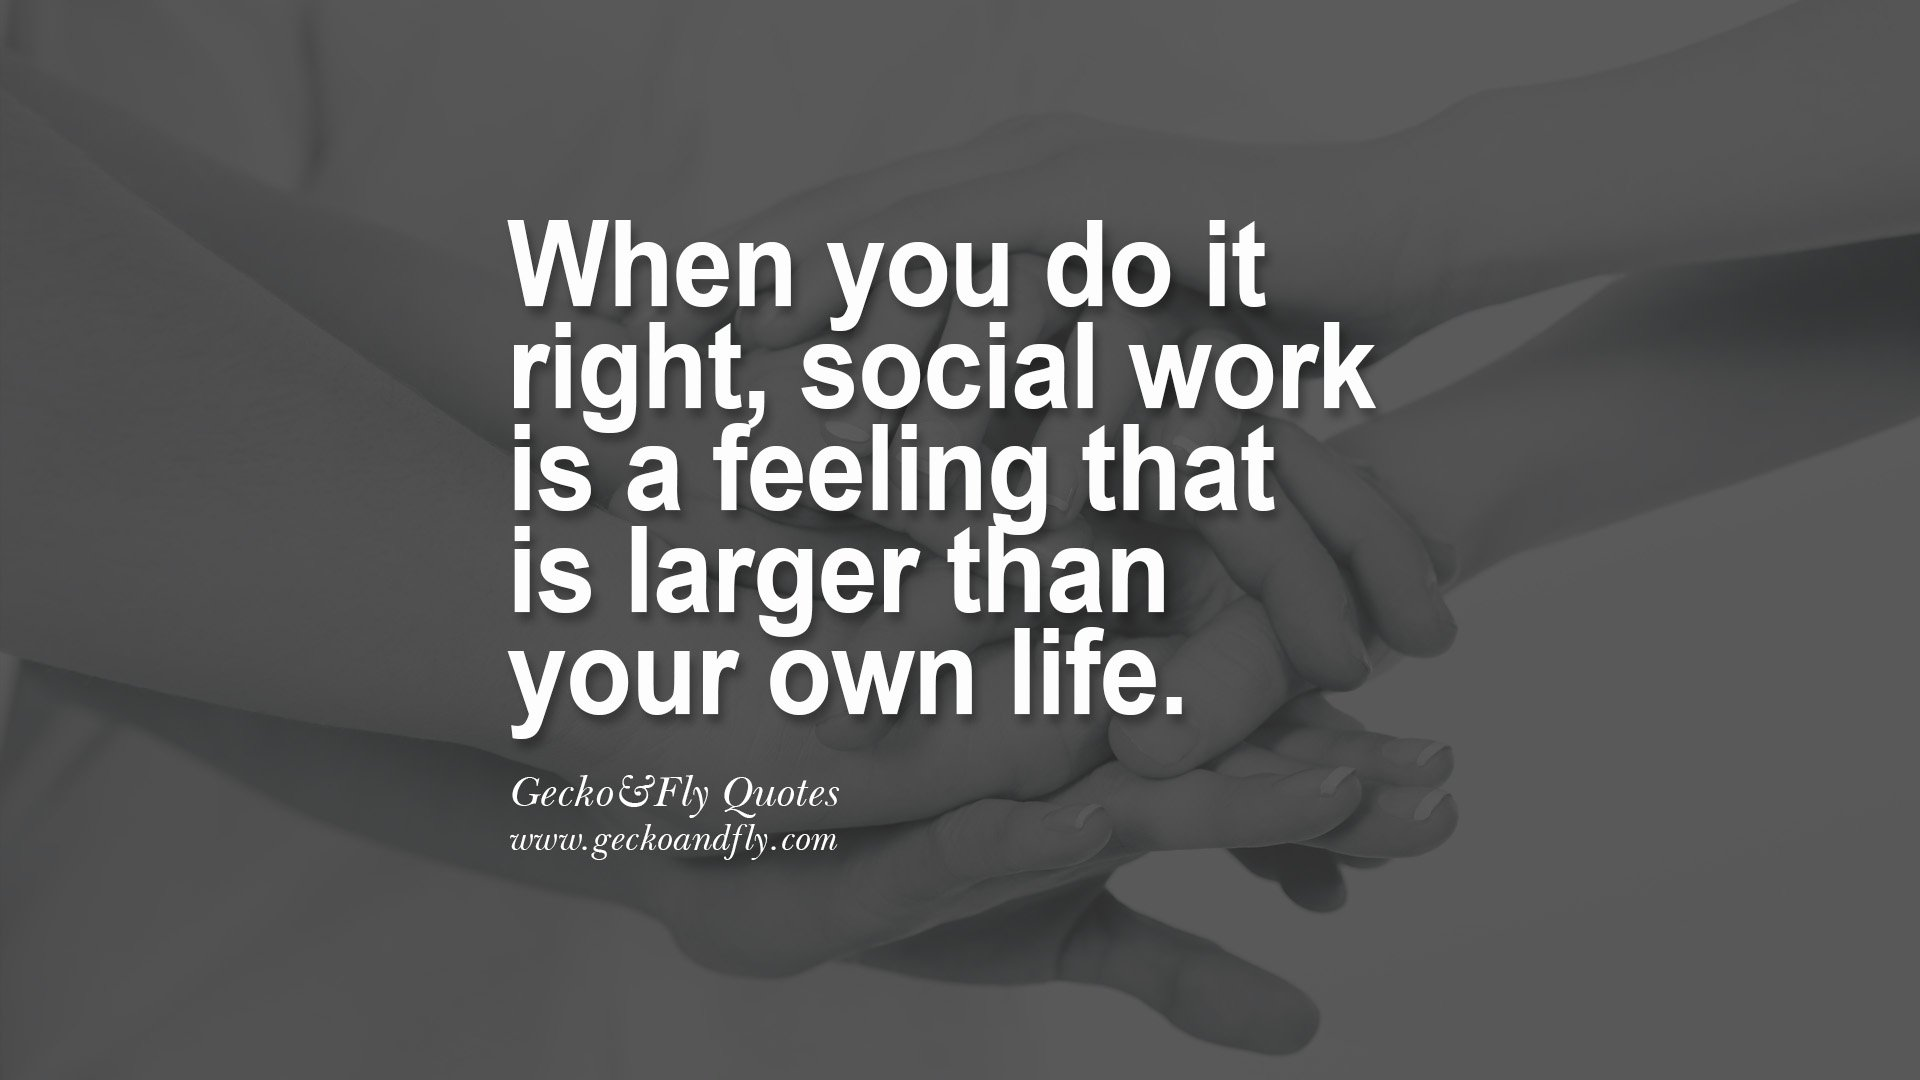 Social Work Quotes Sayings: Quotes By Social Workers. QuotesGram